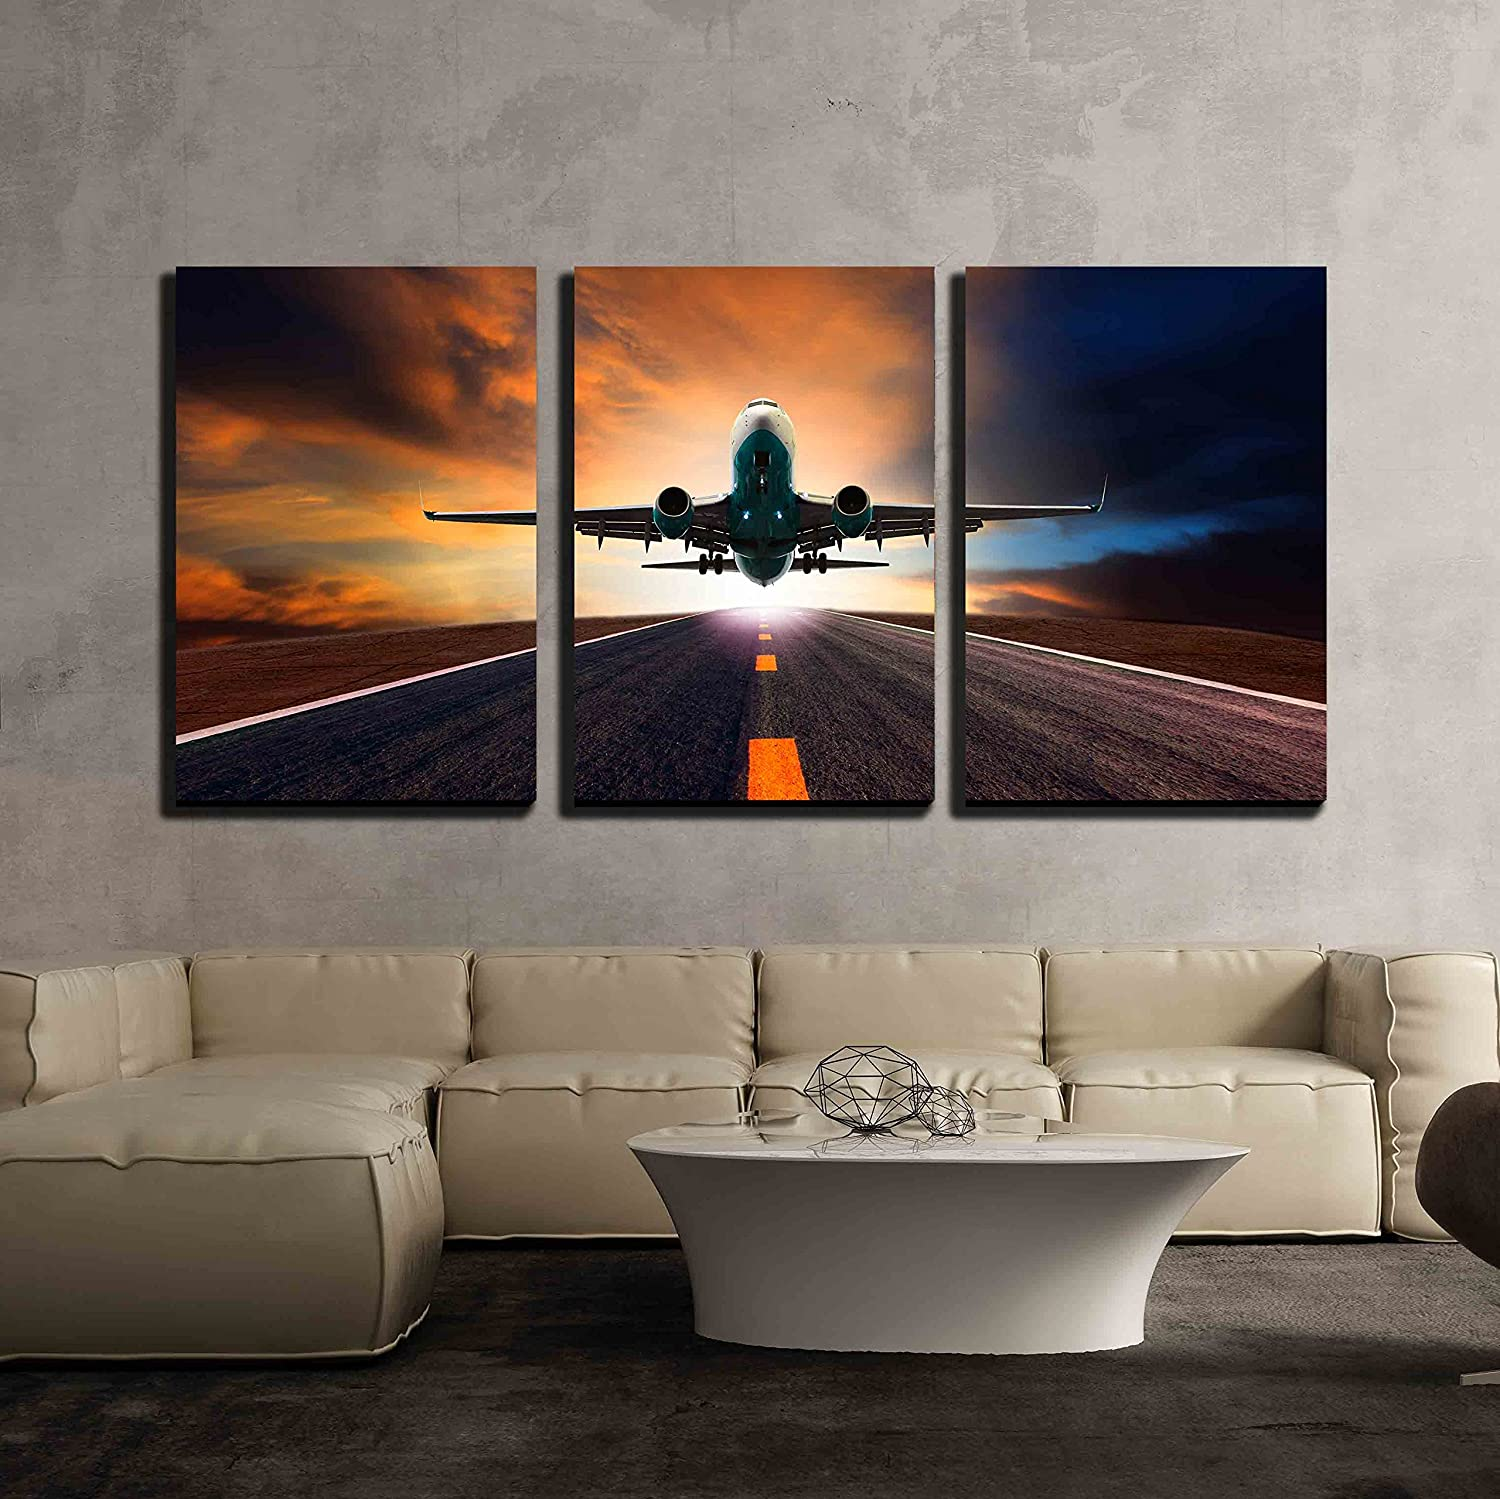 Jet Plane Flying Over Runway Wall Decor X3 Panels Canvas